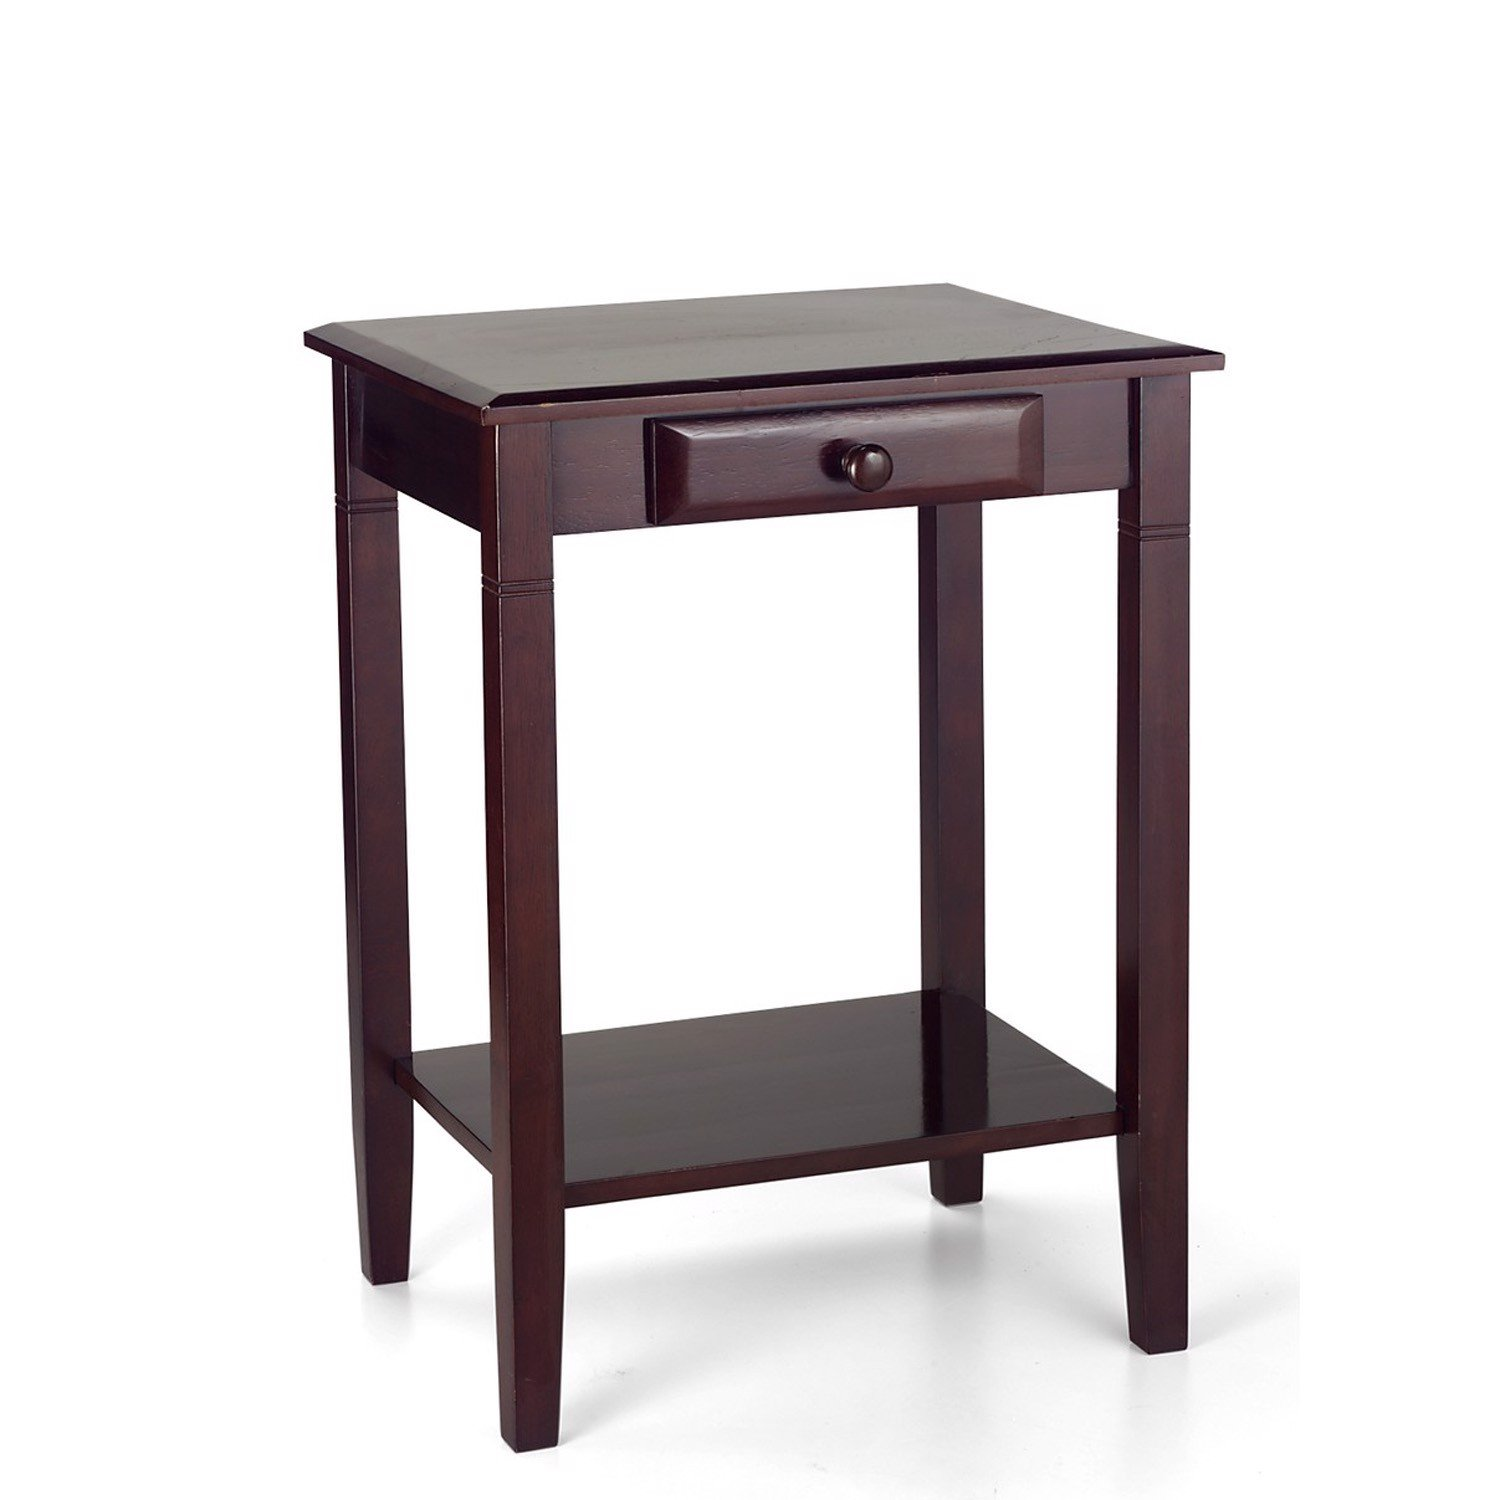 End Table<br/>IDT381